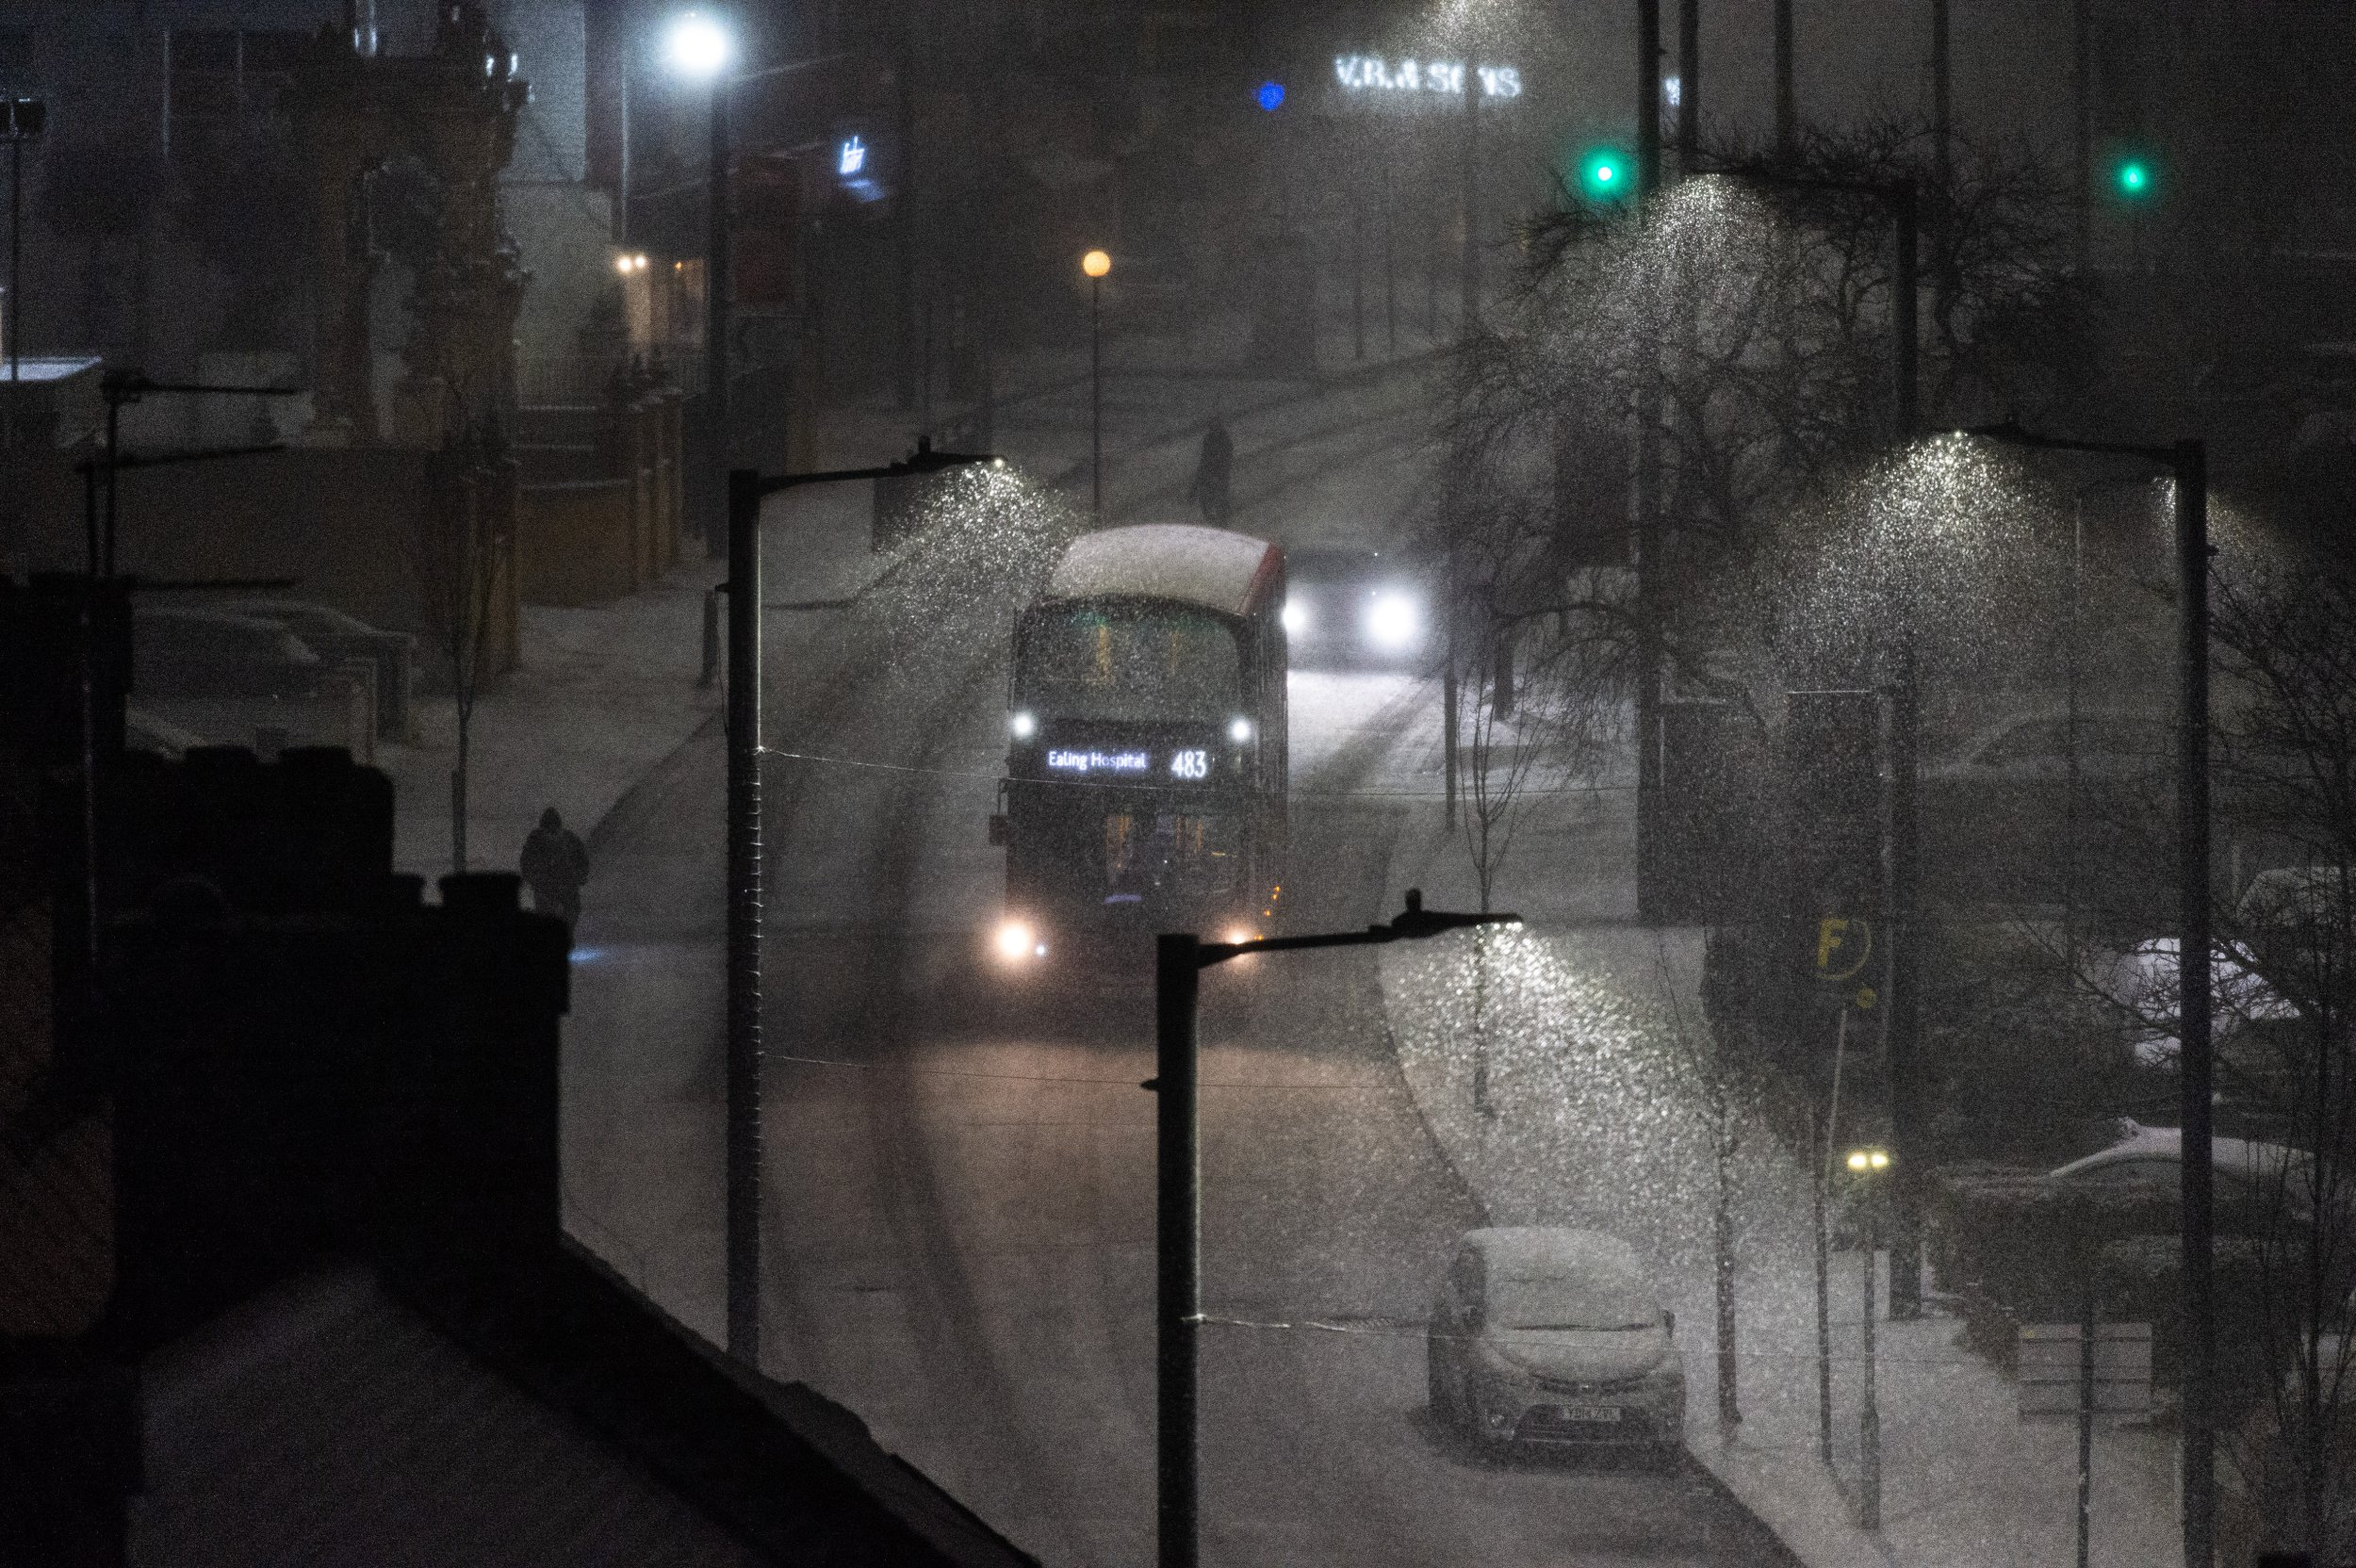 ?? Licensed to London News Pictures. 31/01/2019. London, UK. A bus drives on the snow covered streets of Wembley. Photo credit: Ray Tang/LNP